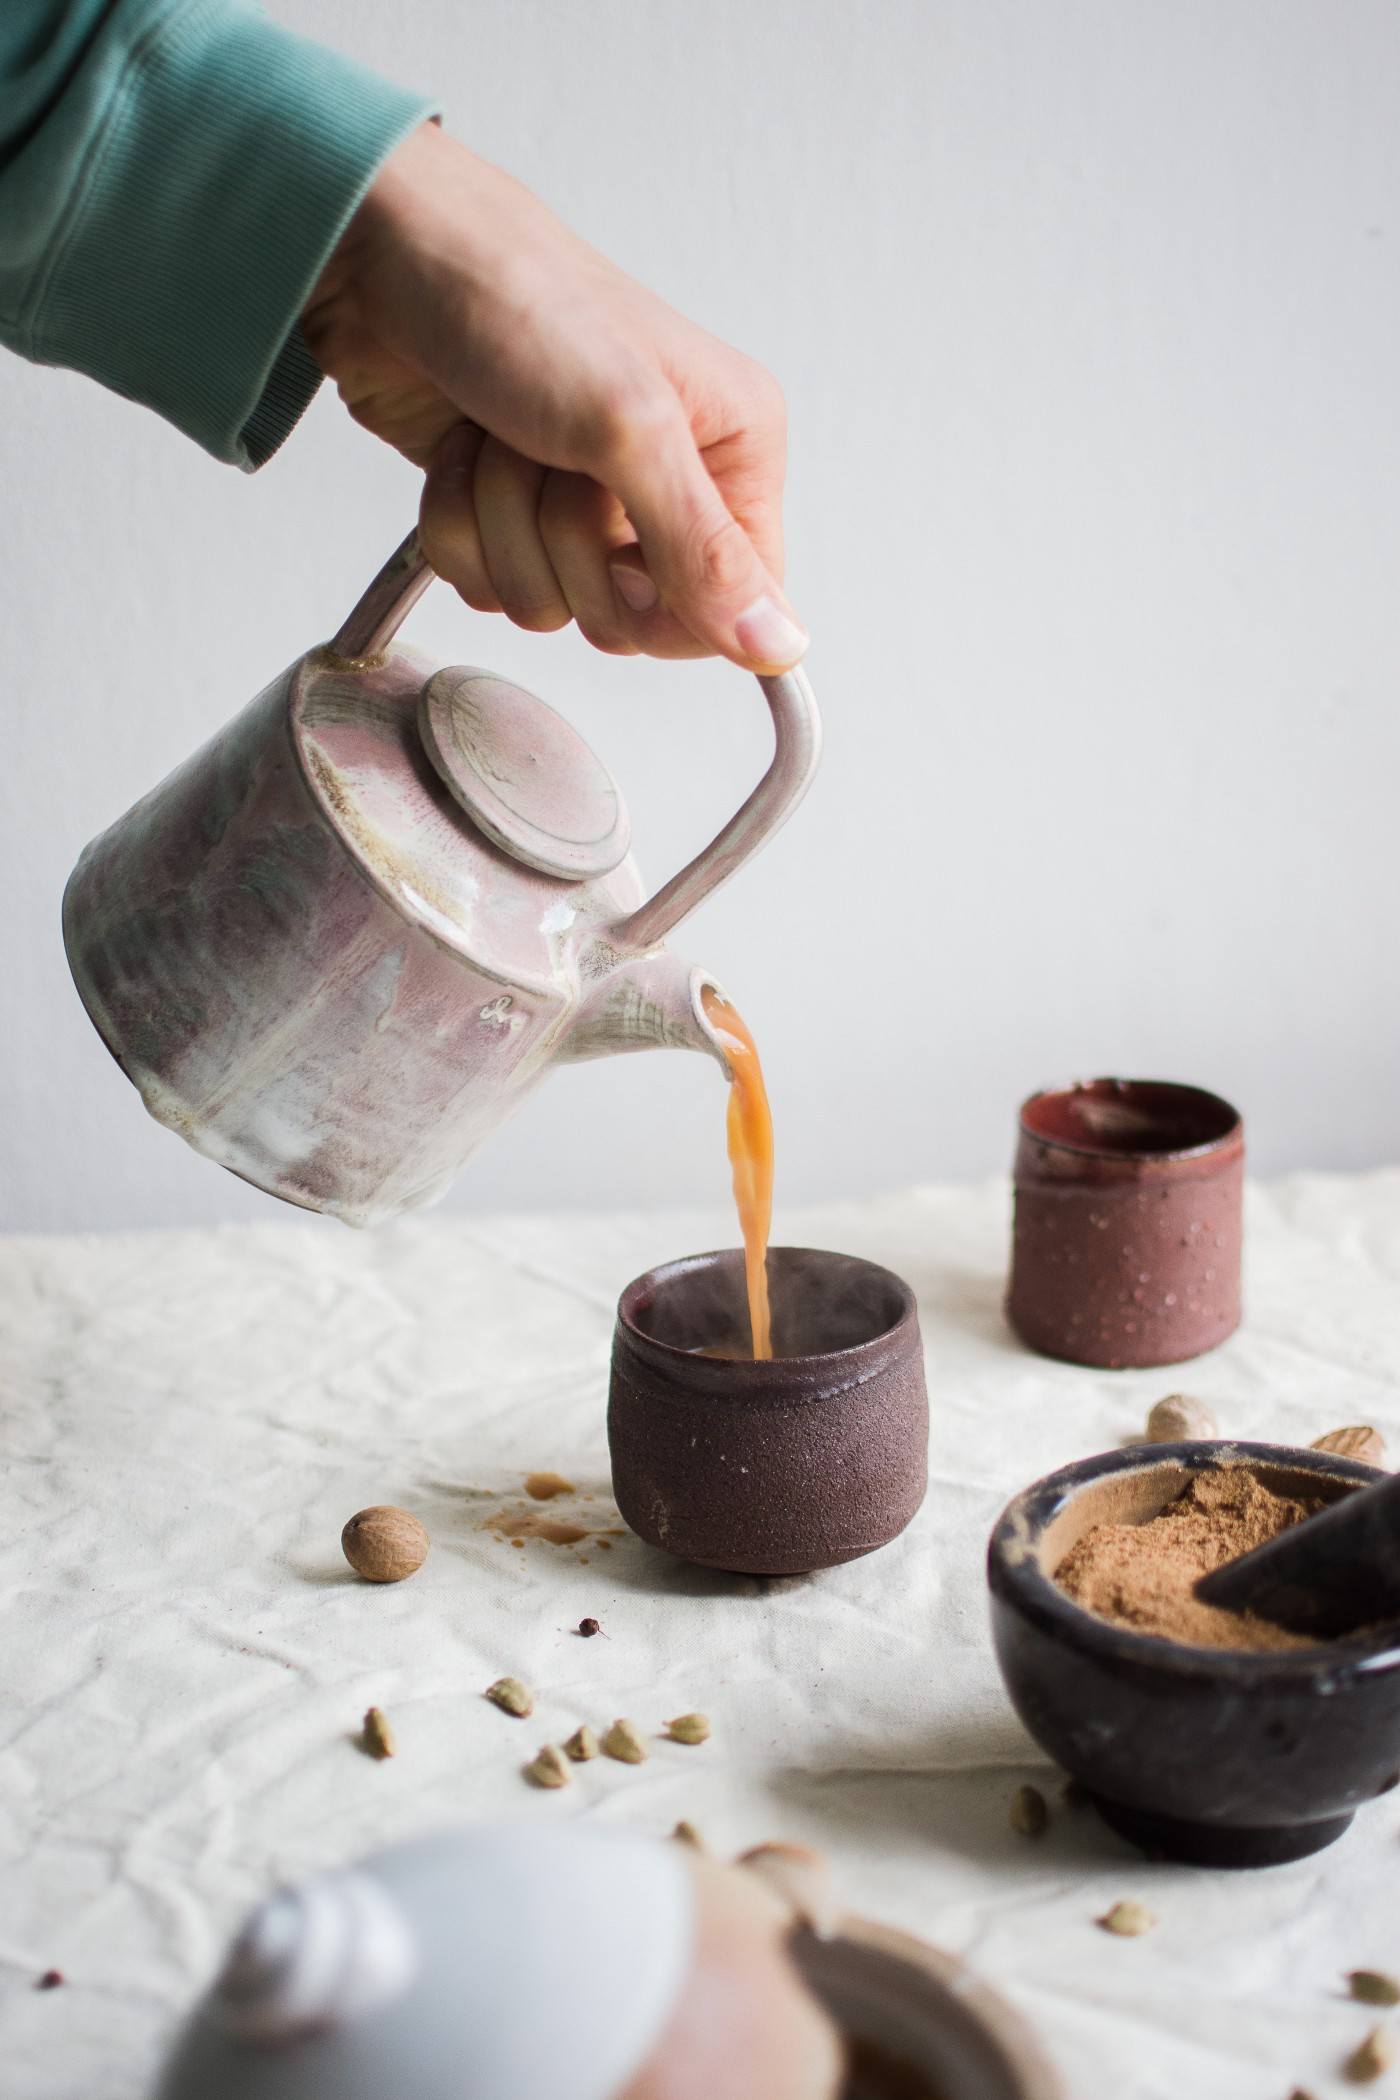 Person pouring a hot coffee-like liquid into handless mugs.